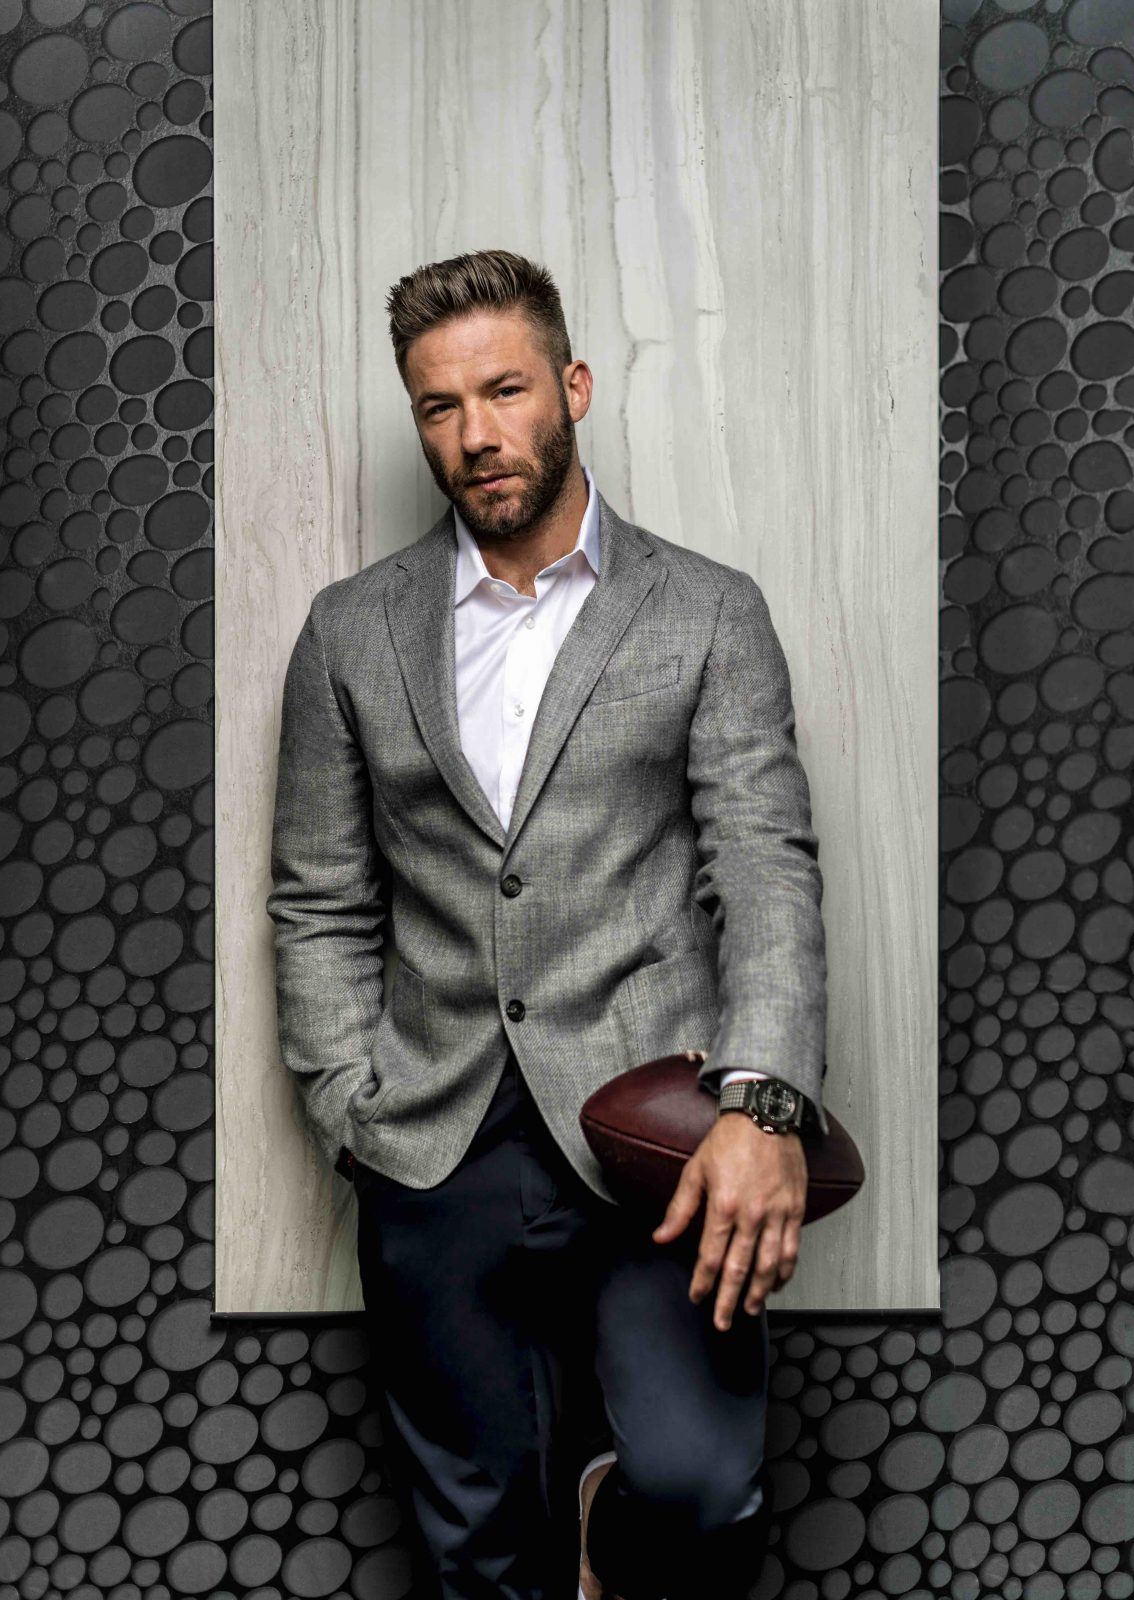 Julian Edelman Is Prepared To Dominate On The Gridiron Once